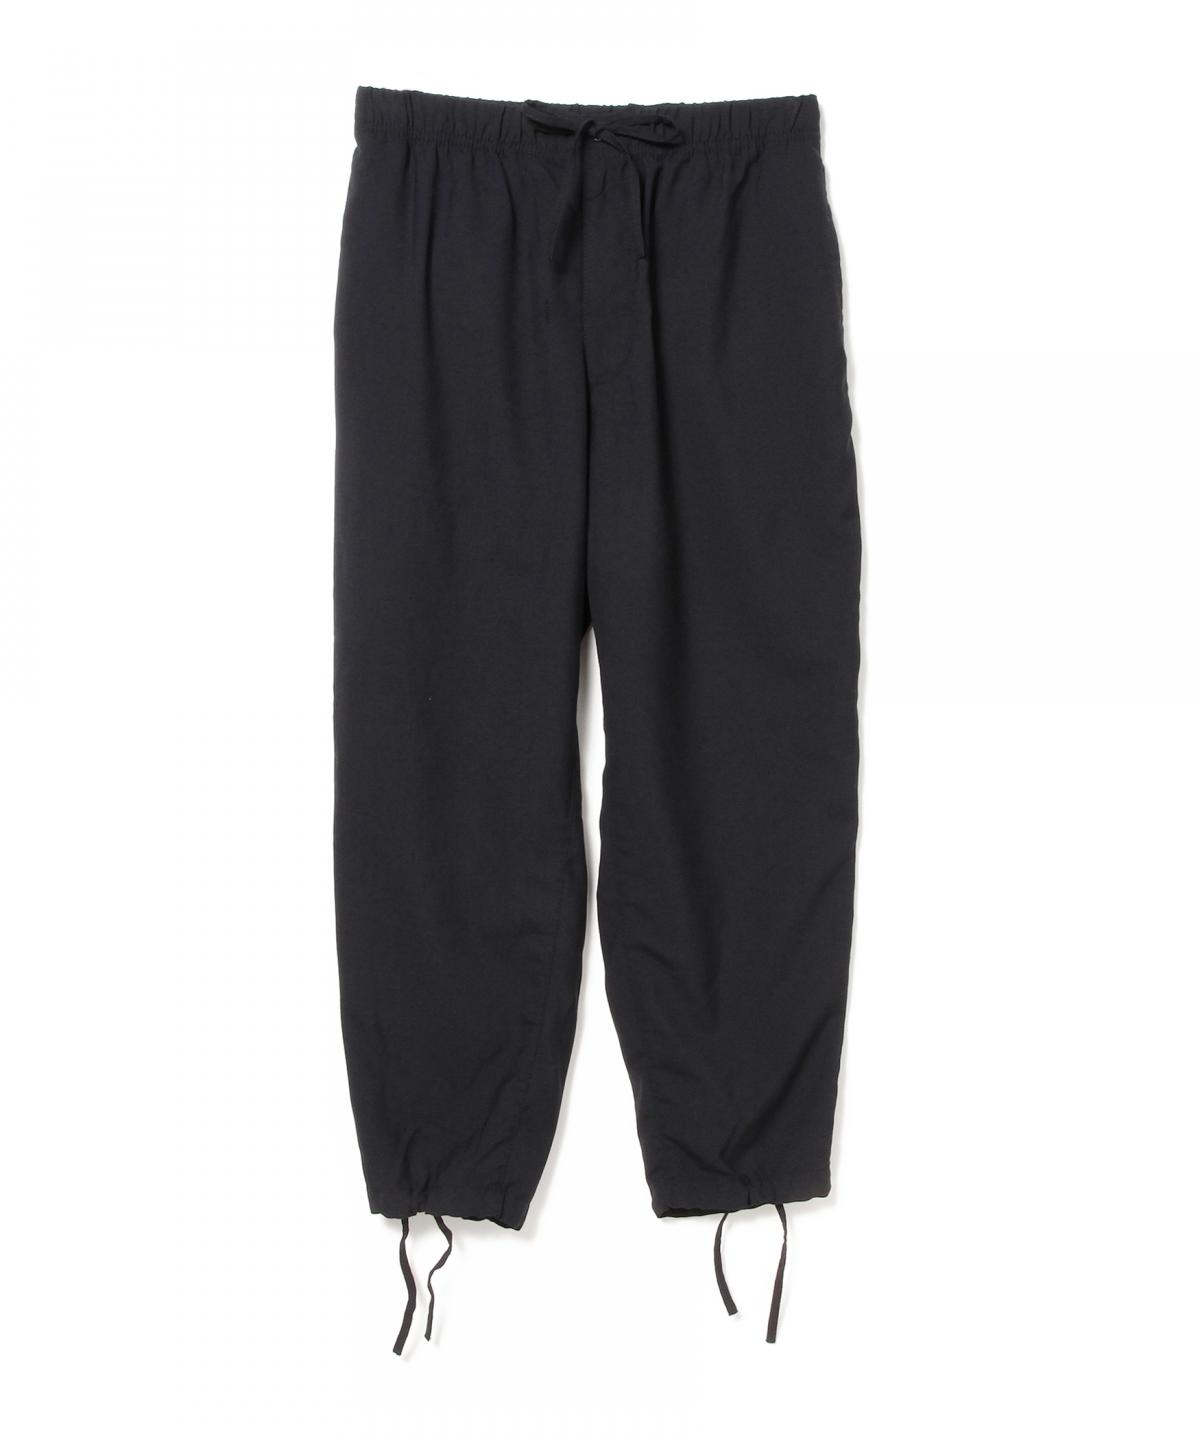 HARRY Tropical Wool Pants